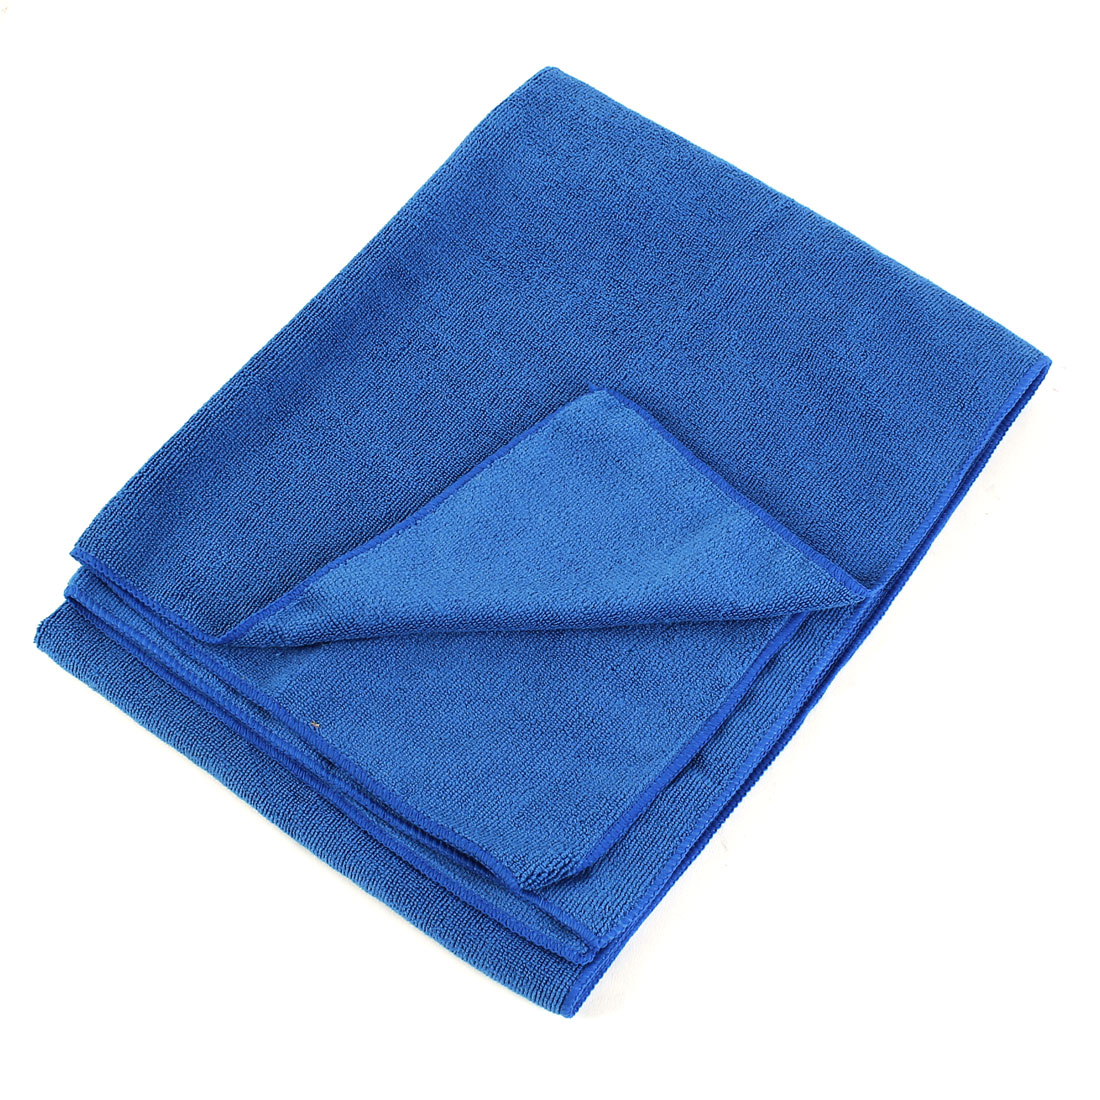 Rectangle 160x65cm Microfiber Cleaning Washing Cloth Towel Light Blue for Car Vehicle